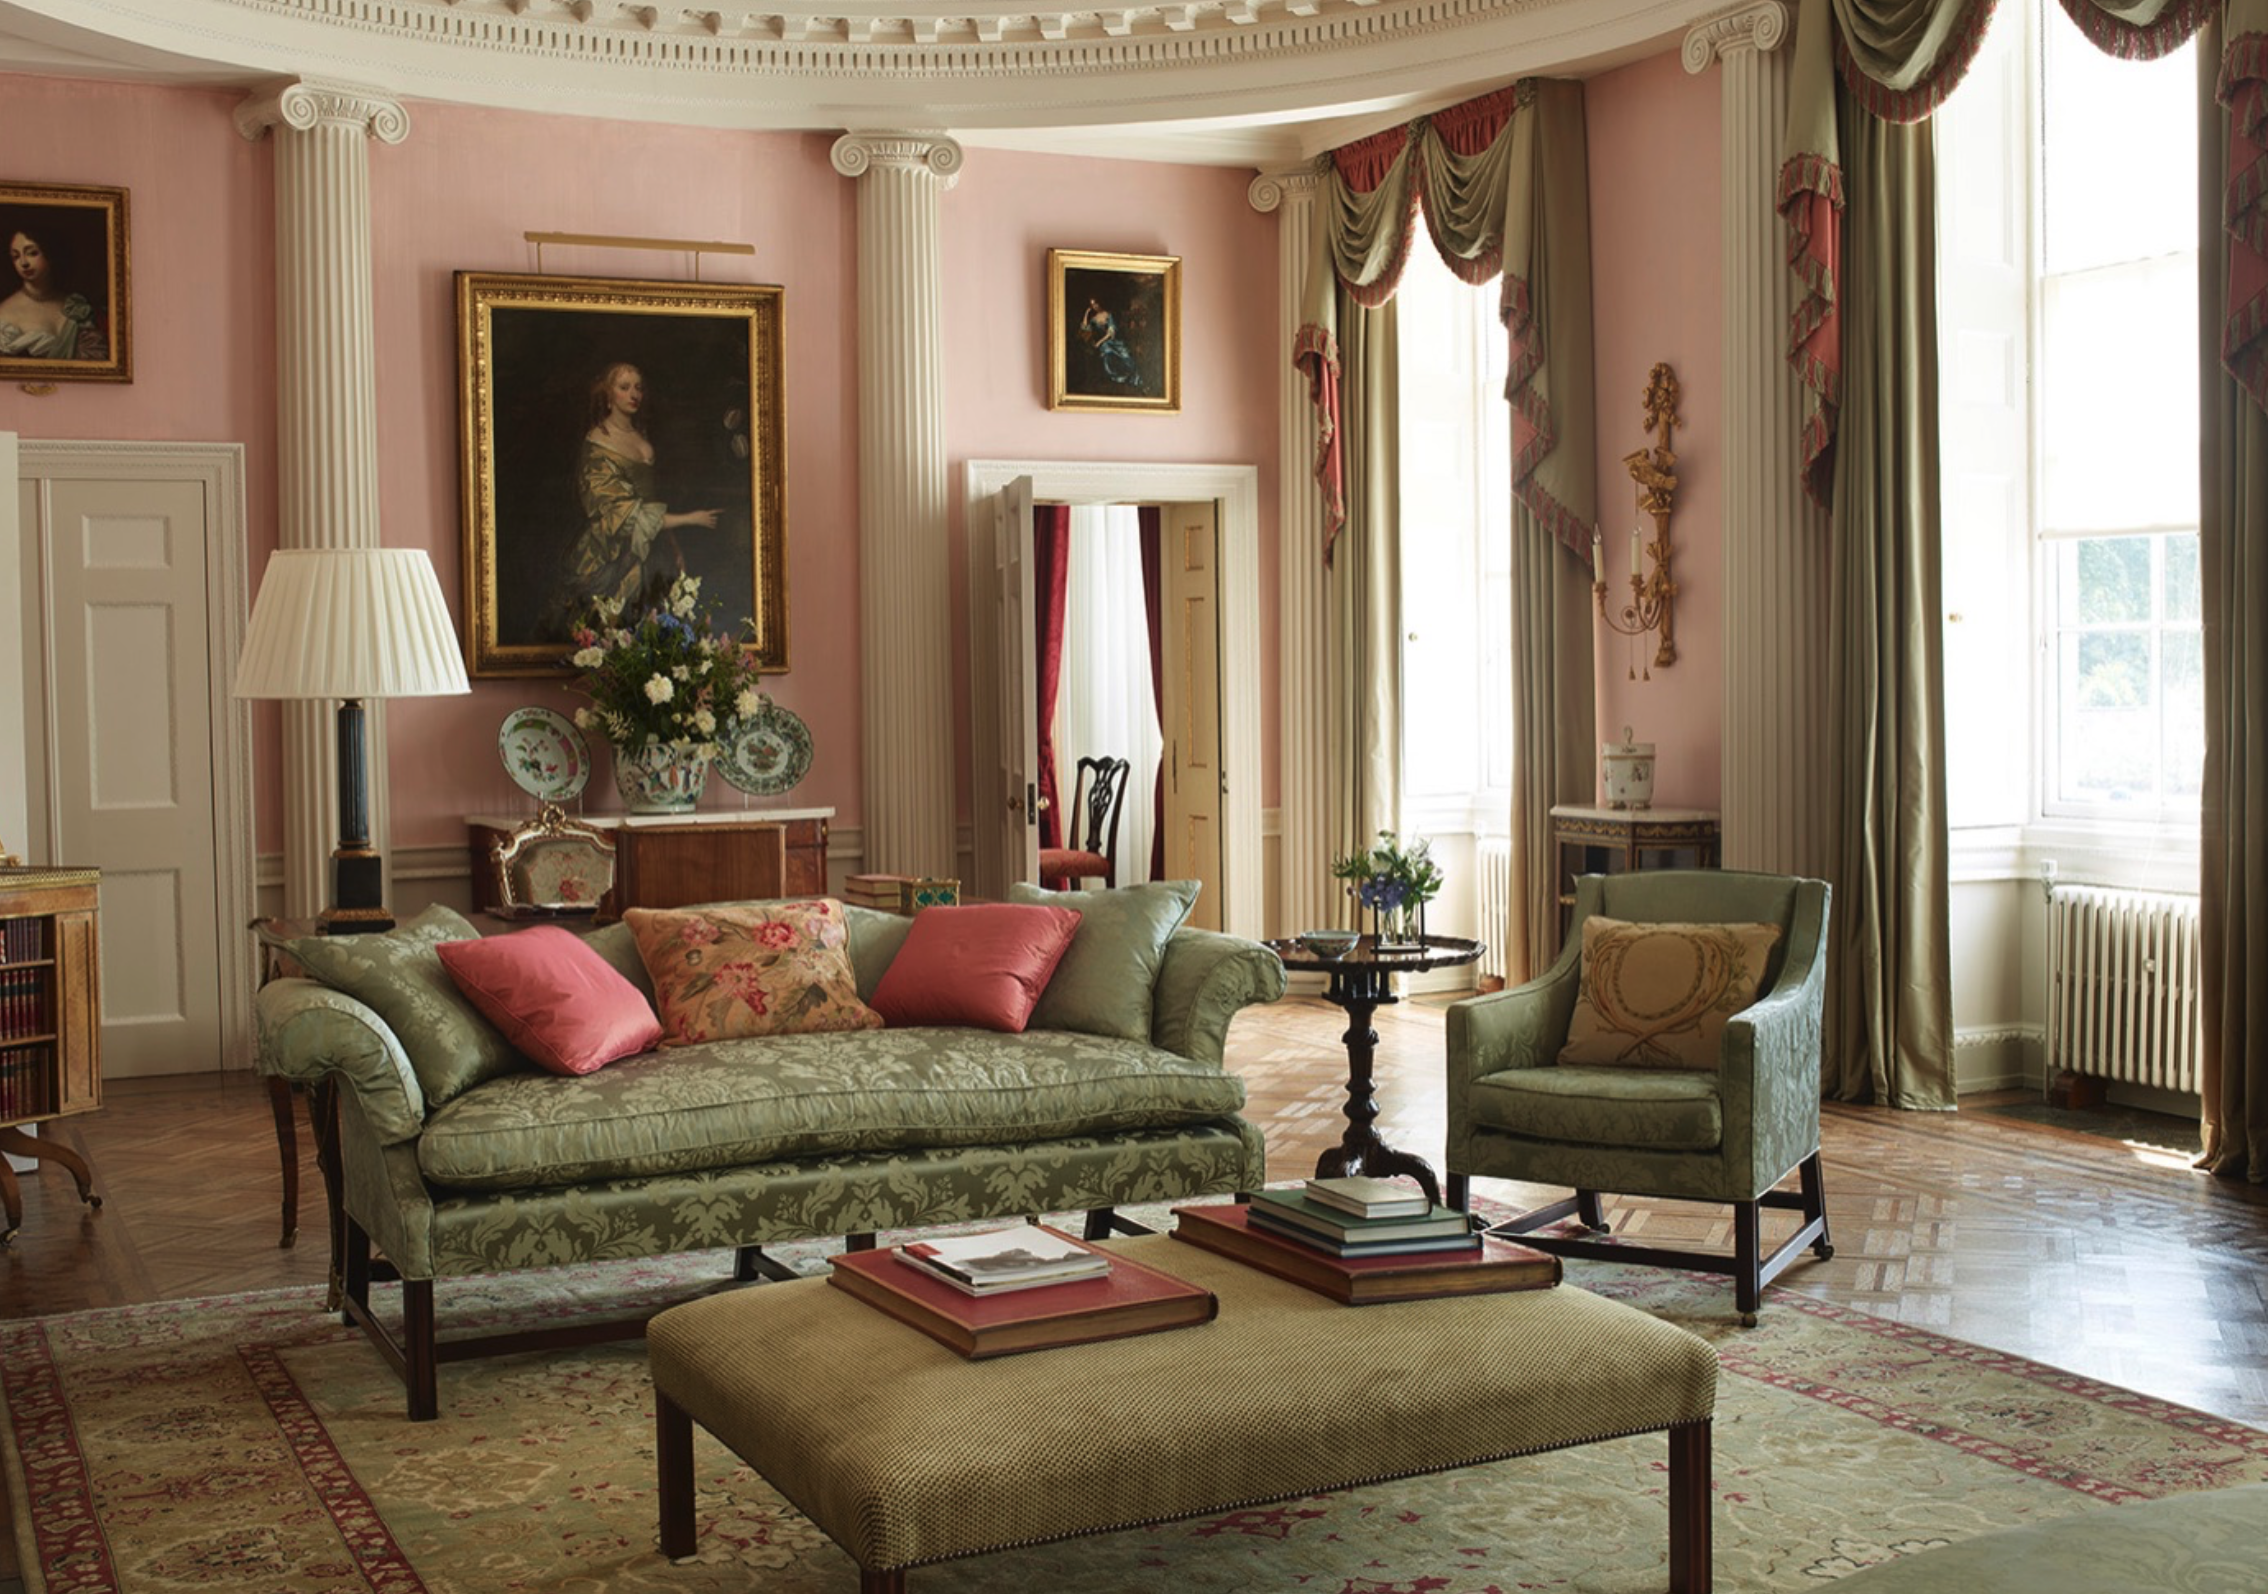 Staffordshire House Living space in pink and green designed by Colefax & Fowler